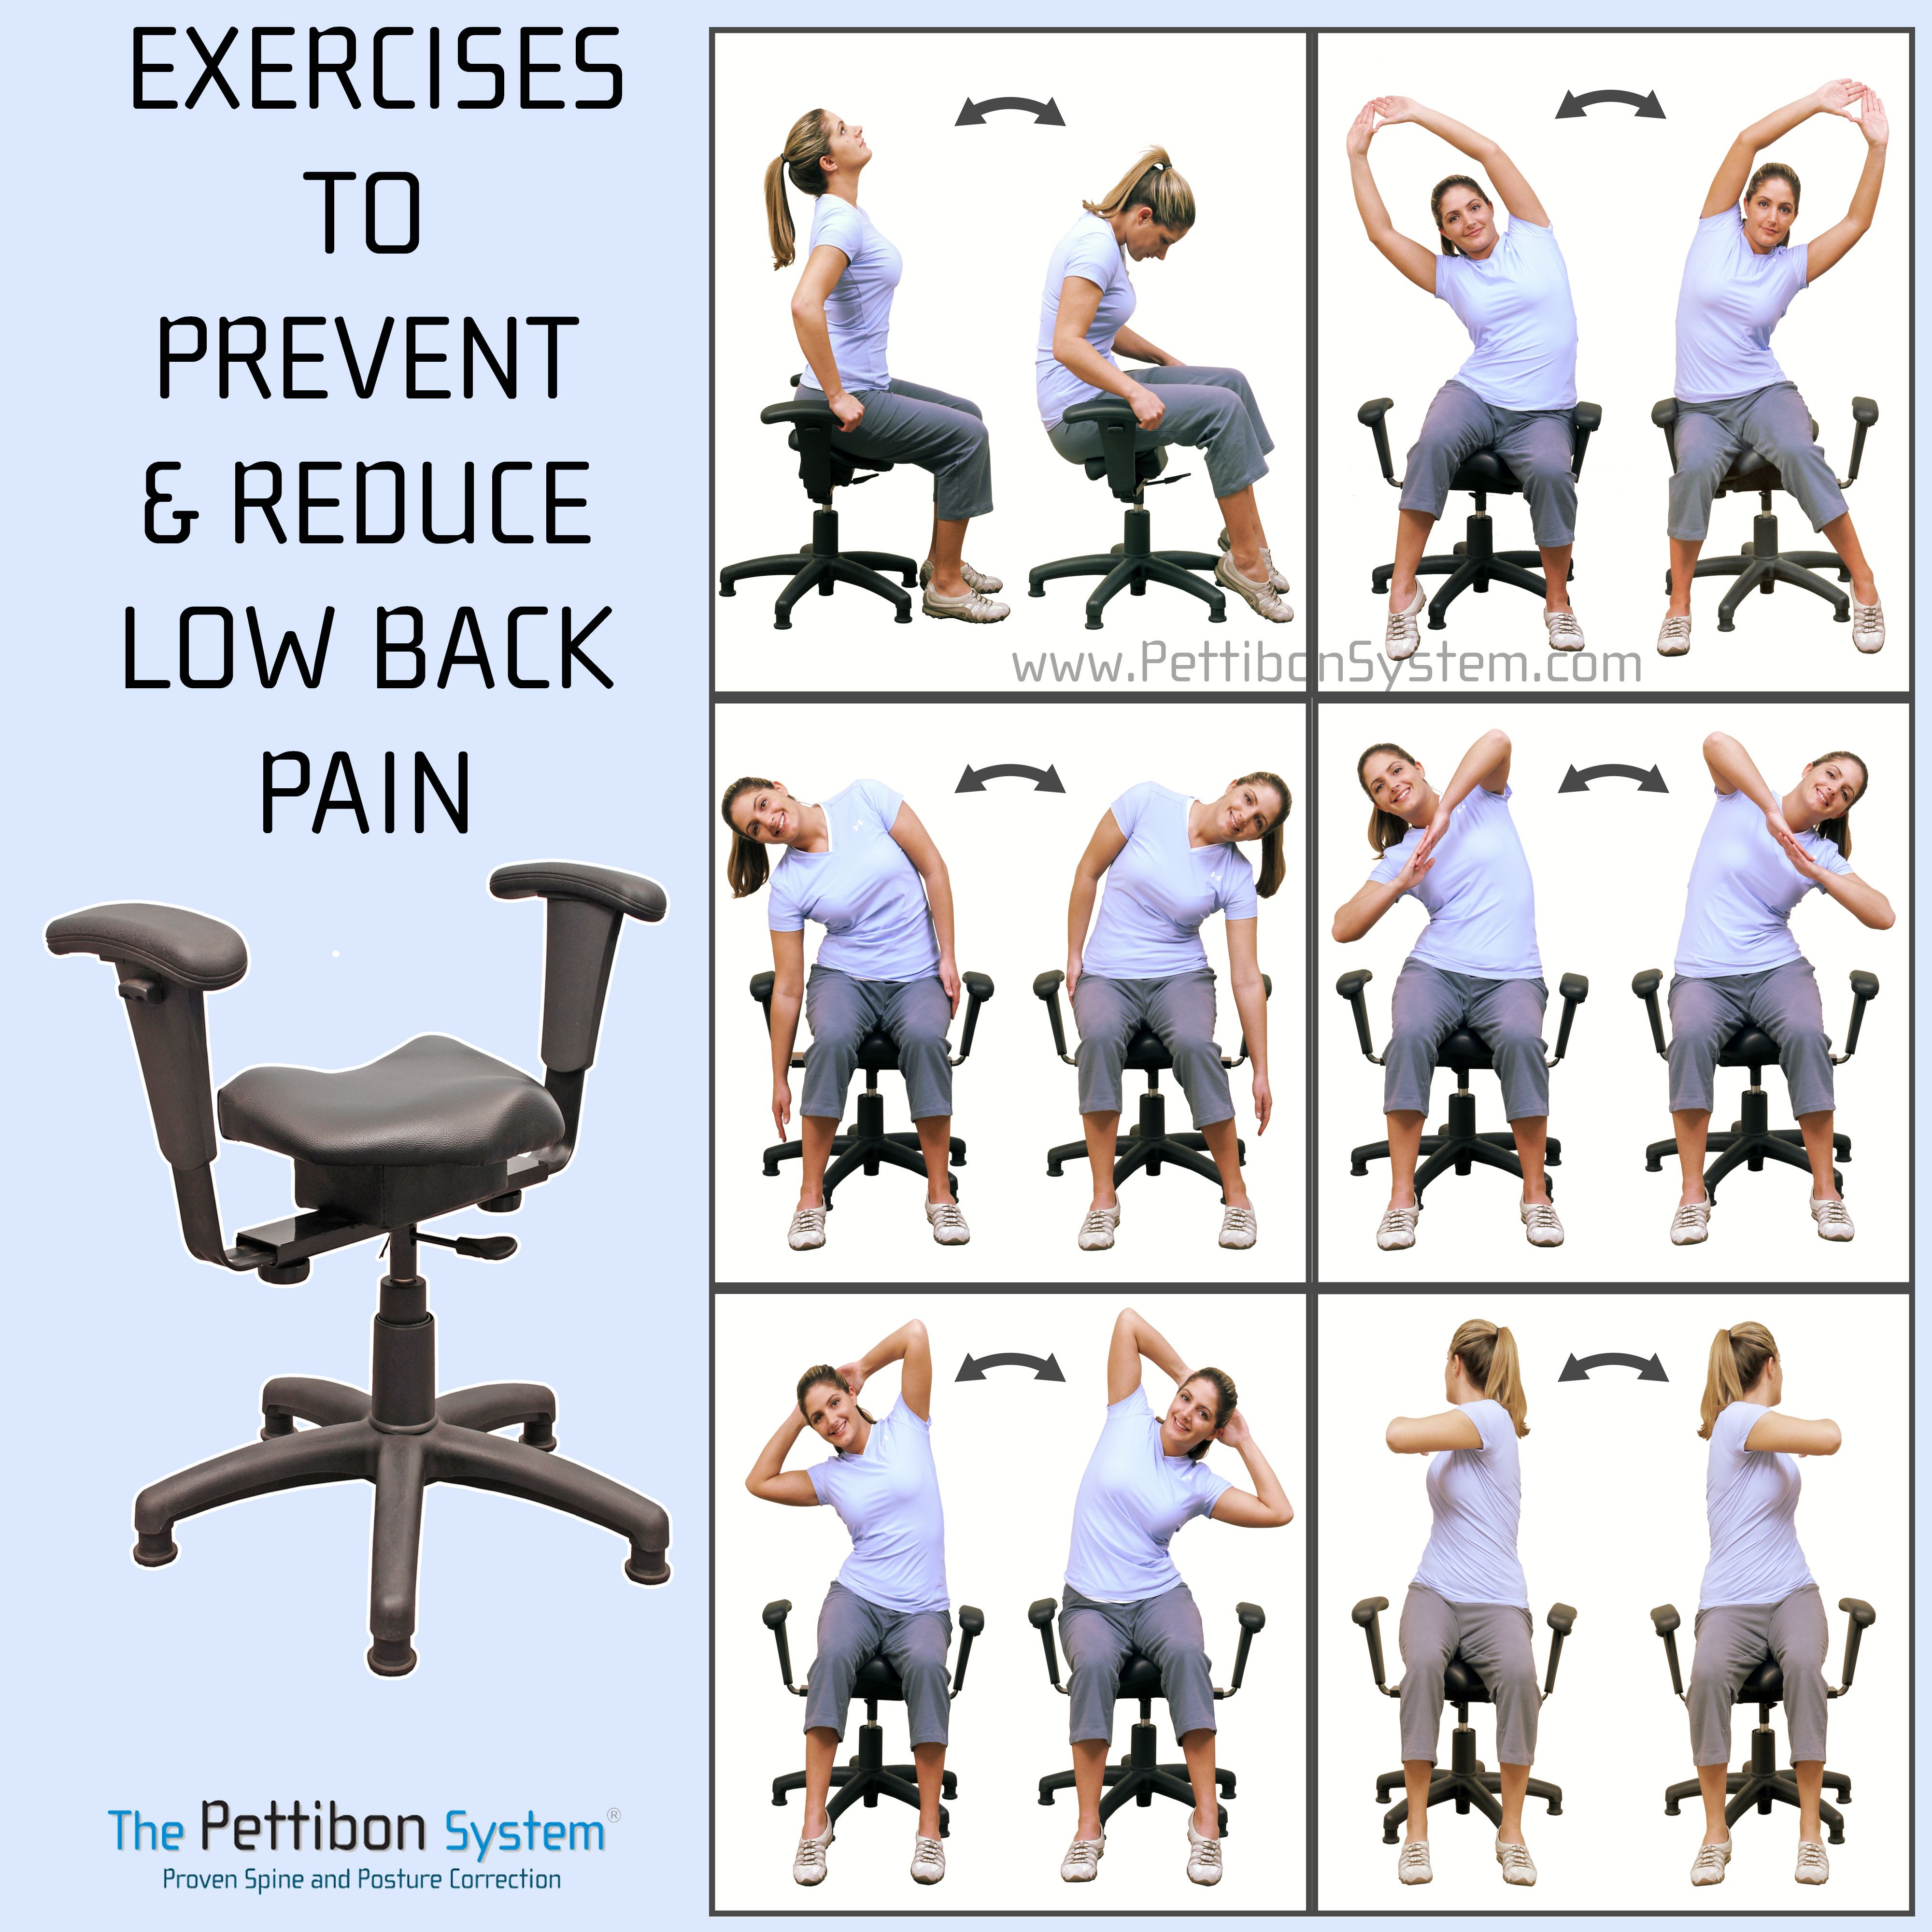 Amazing stretches for Back Pain Relief The Wobble Chair helps